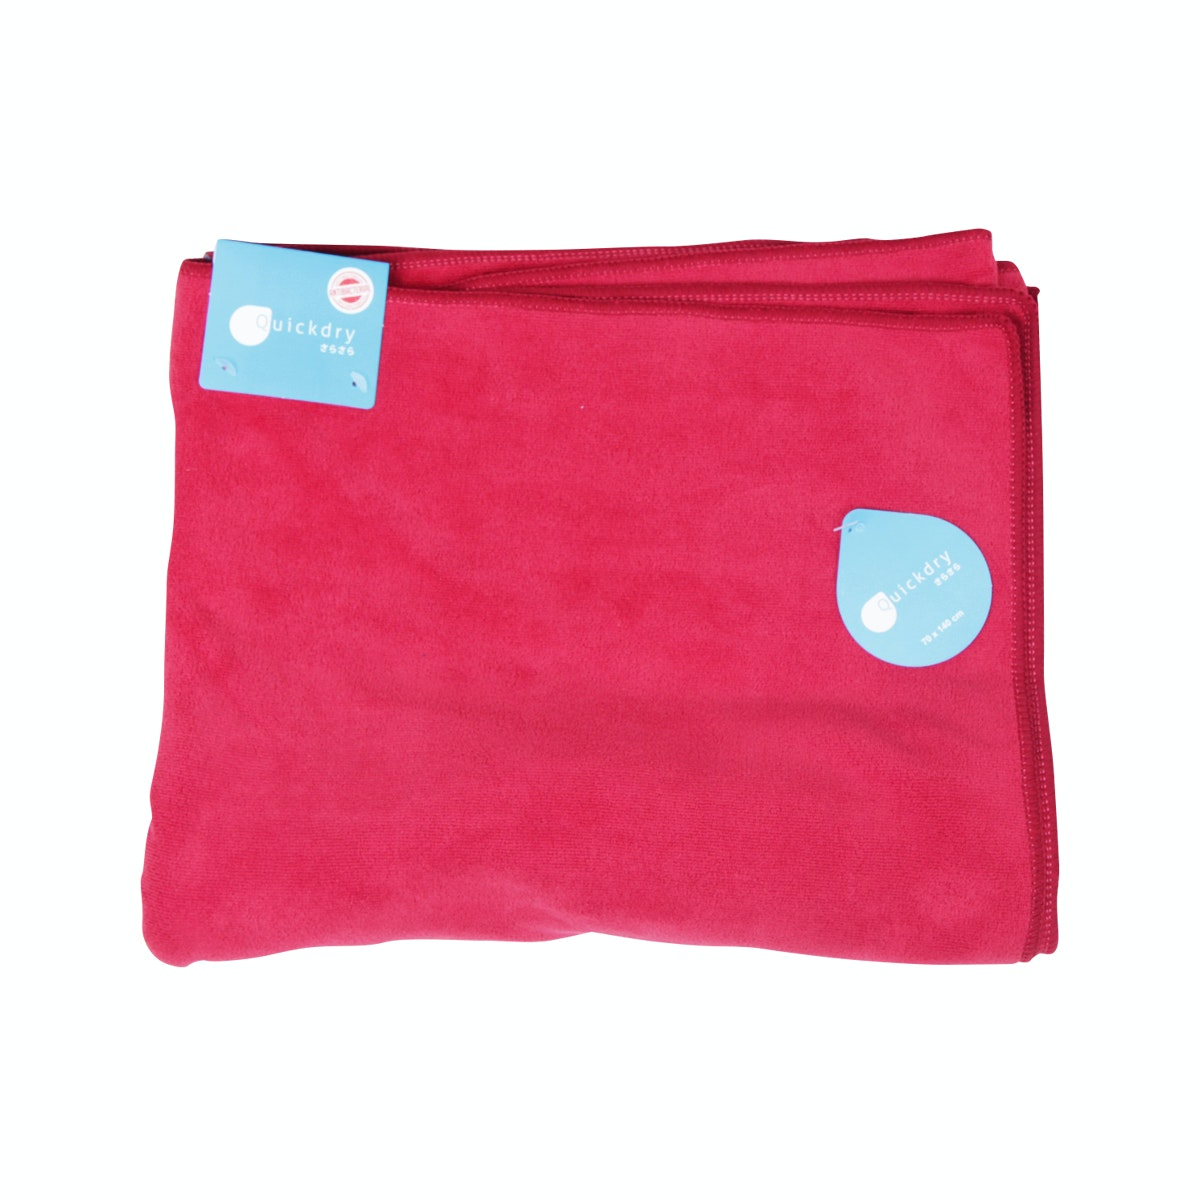 Quickdry Travel Towel Dark Red